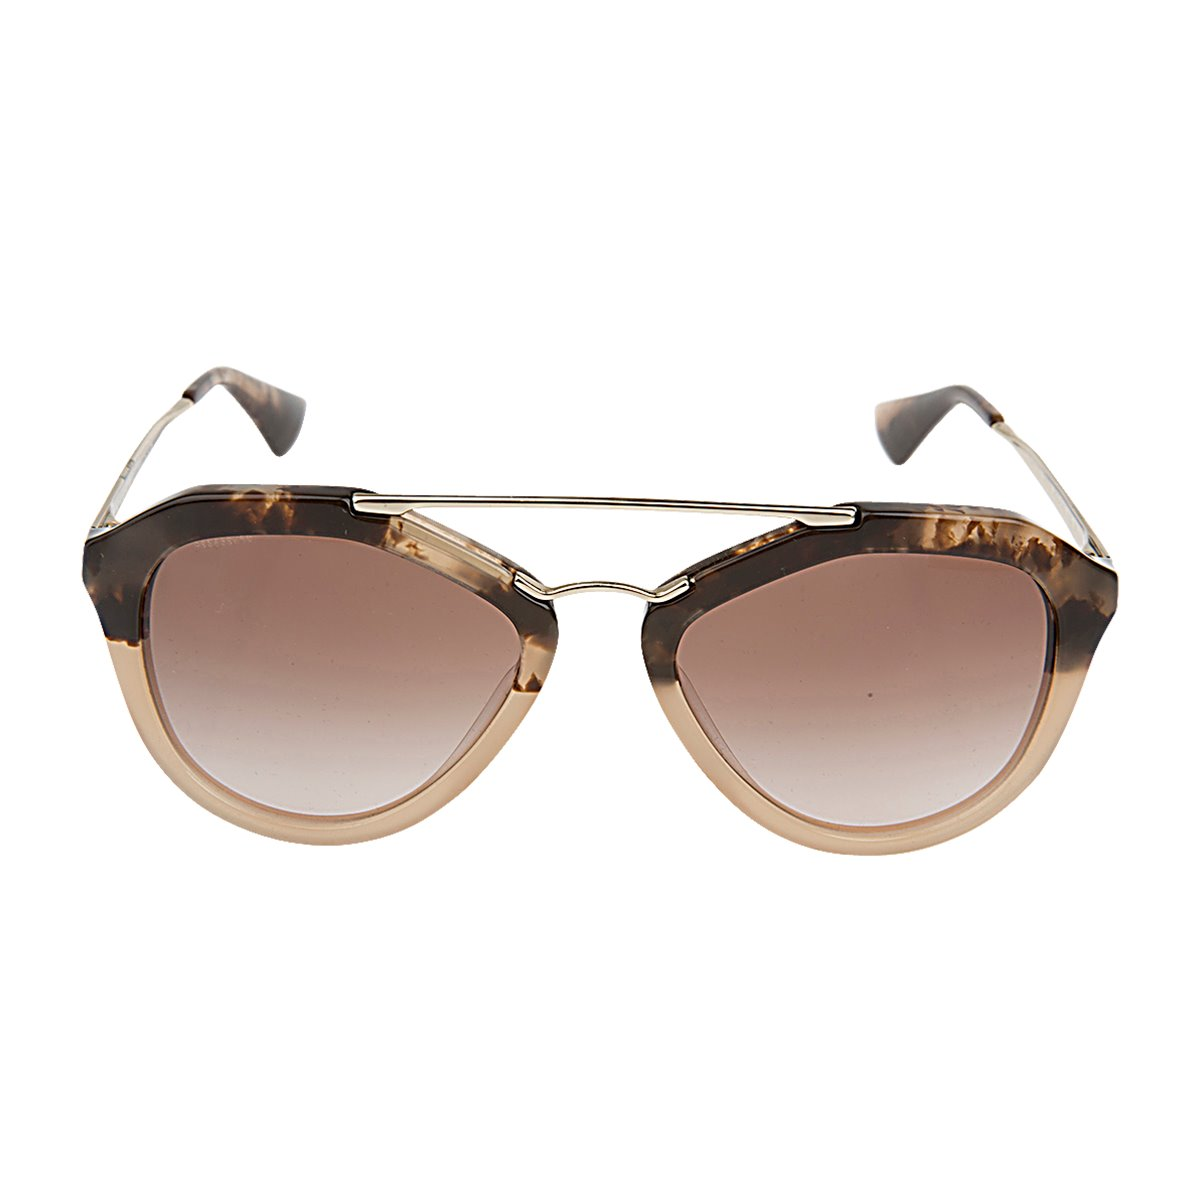 f427f6fdefcb Brand New Authentic Prada SPR12QS-ROZ0A6 Brown Aviator Sunglasses ...